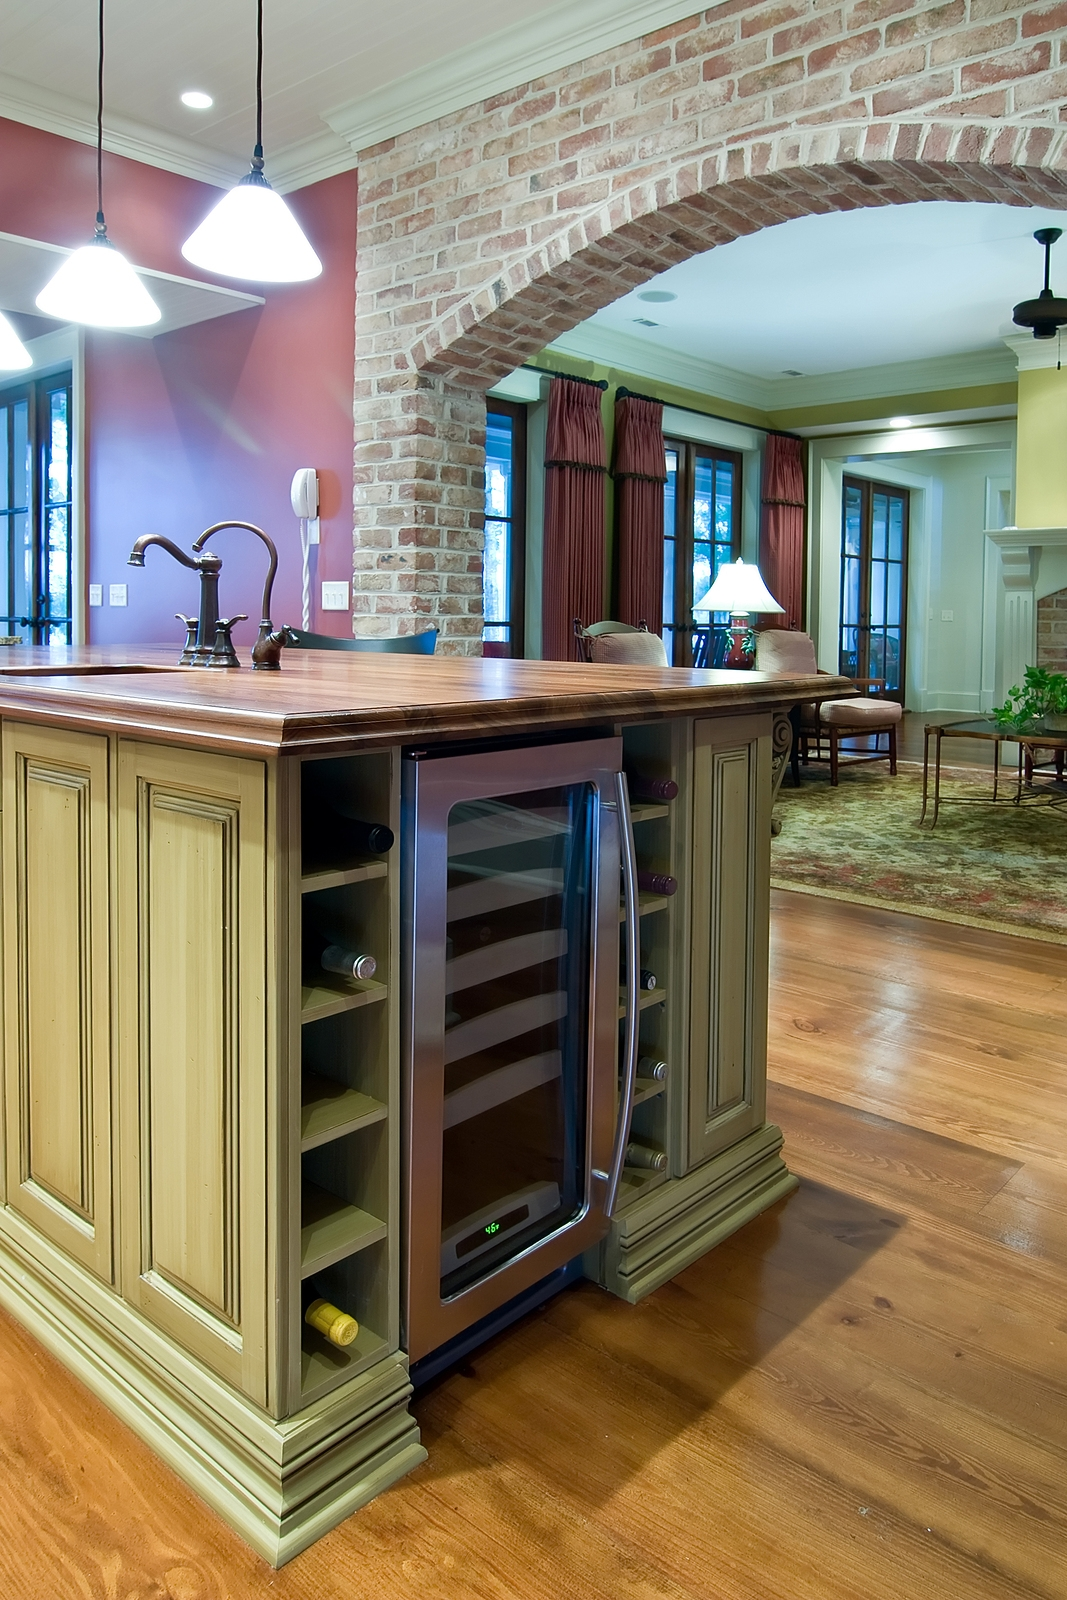 bigstock-kitchen-detail-with-island-and-18524825